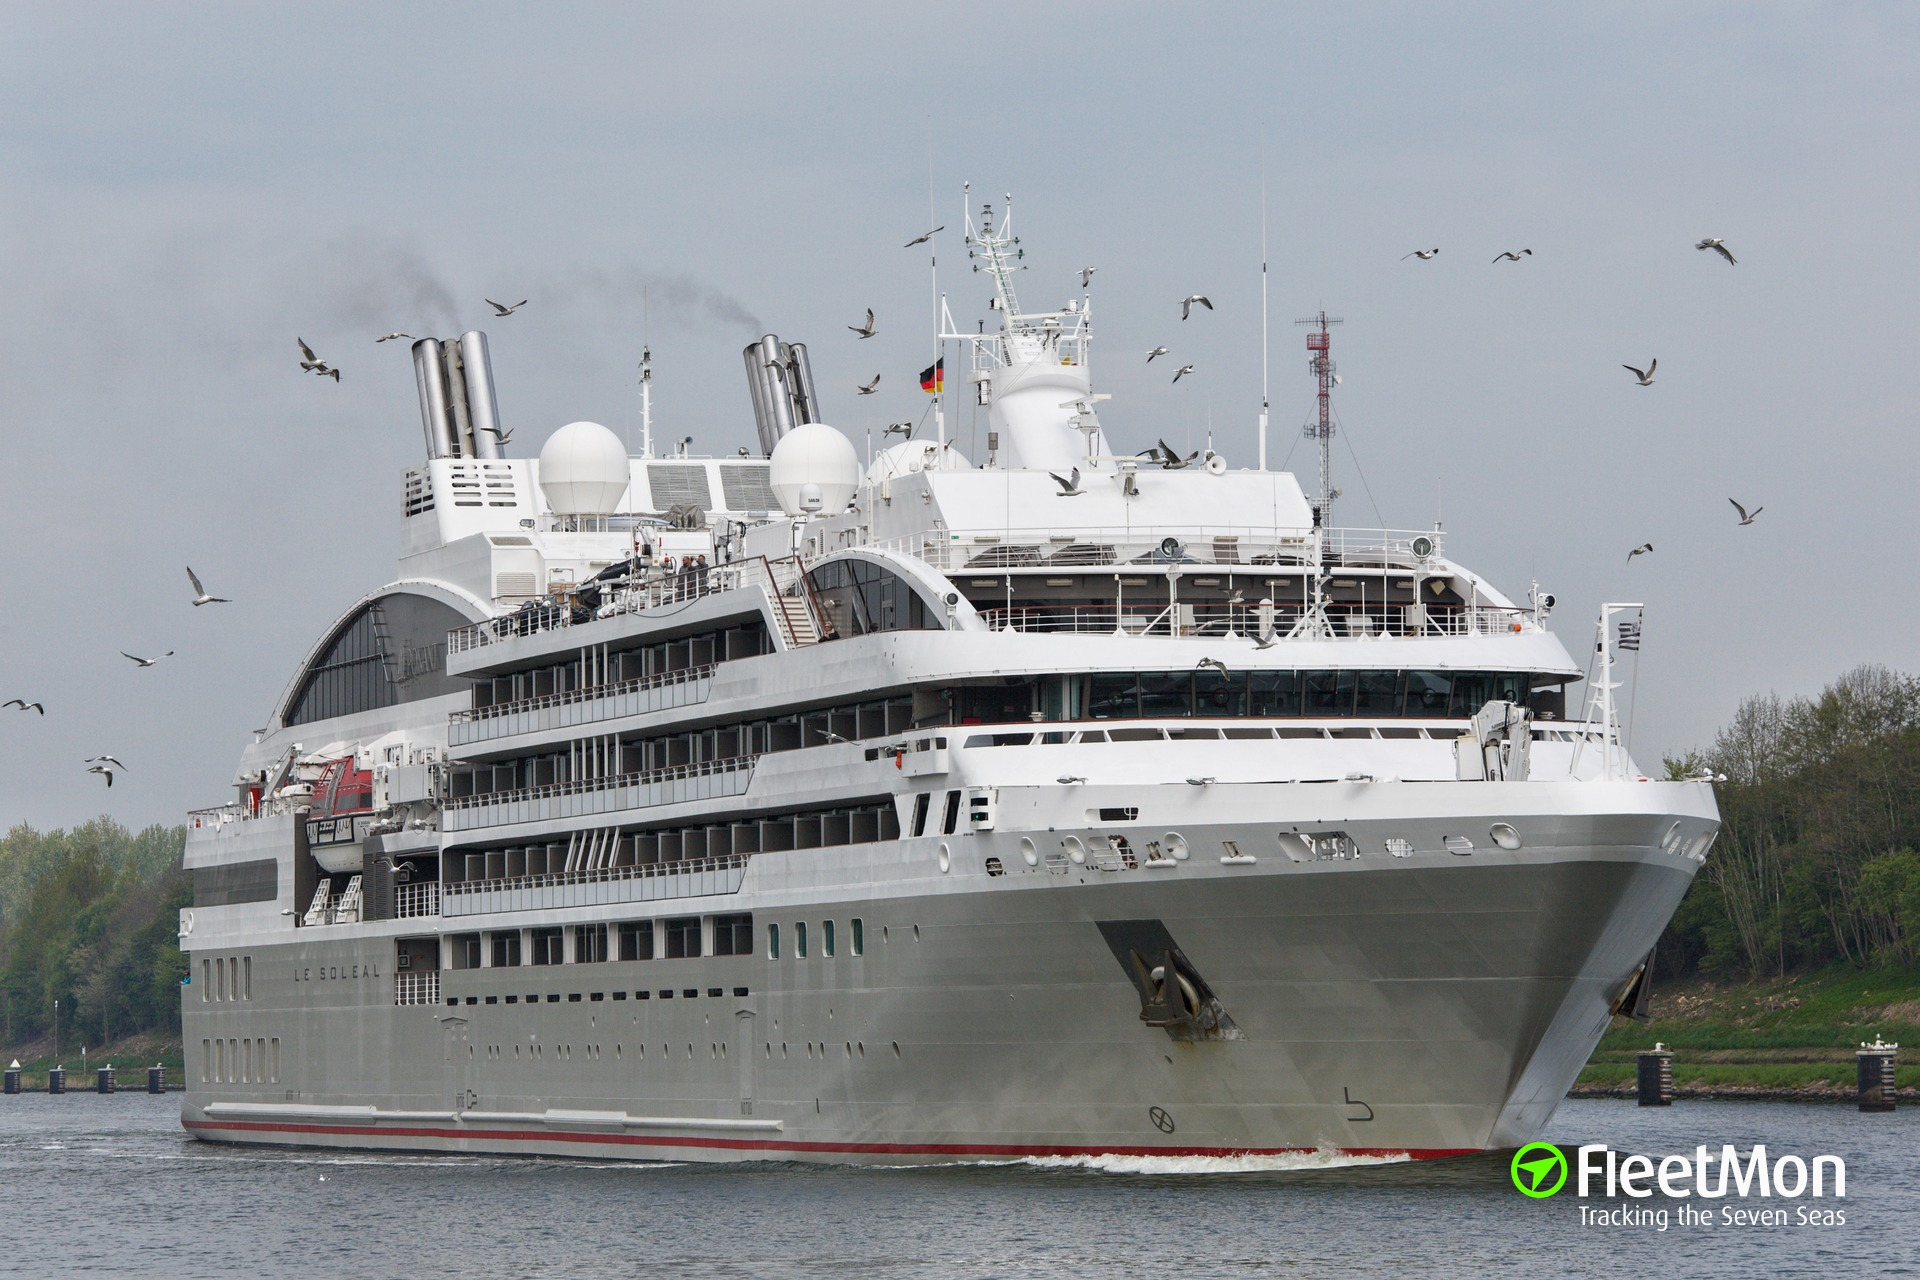 Luxury French cruise liner Le Soleal aground in Bering Strait, Russia